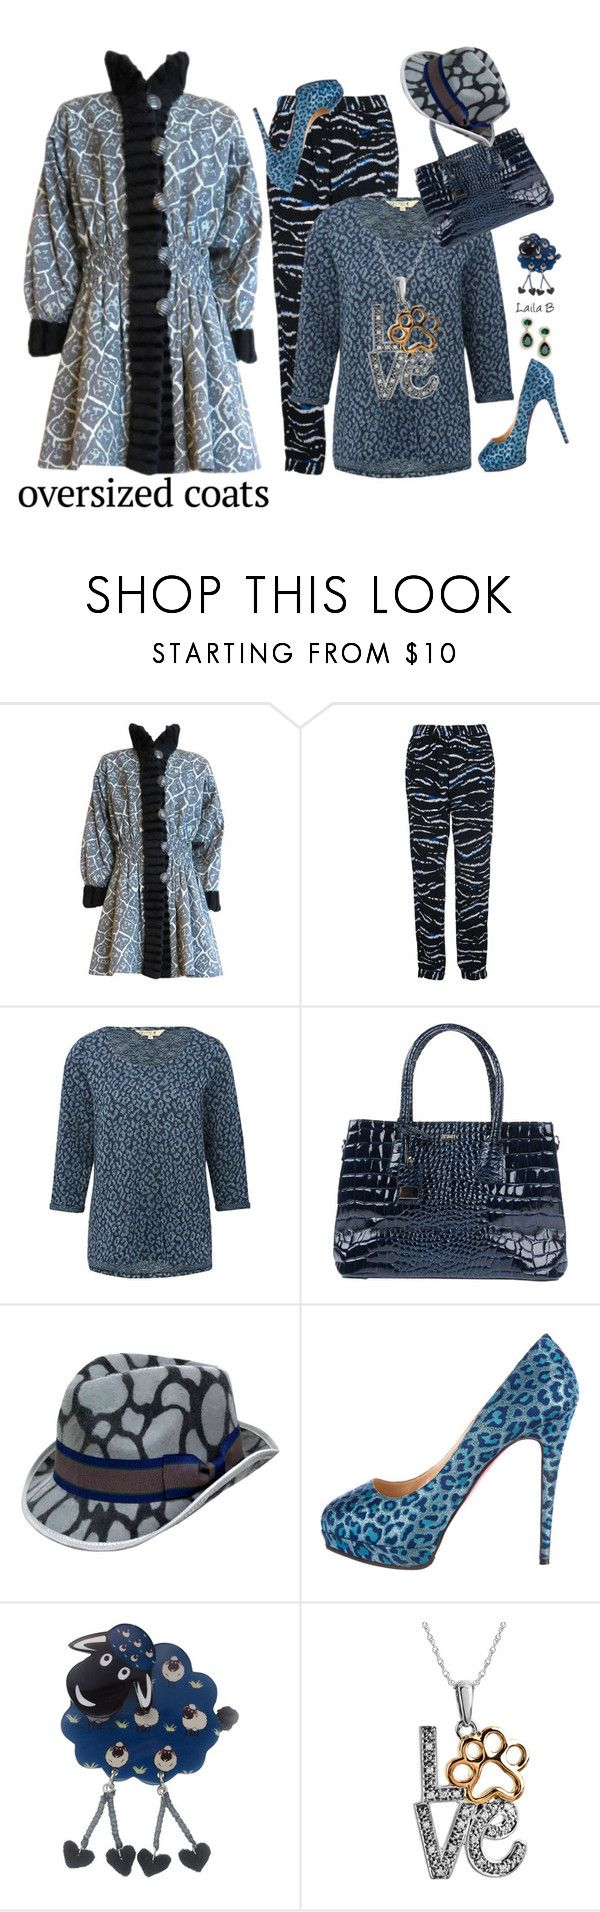 """""""Oversized Coat"""" by laila-bergan ❤ liked on Polyvore featuring Yves Saint Laurent, French Connection, M&Co, TSD12, Christian Louboutin, One Button, ASPCA, outfit and Contesthttp"""